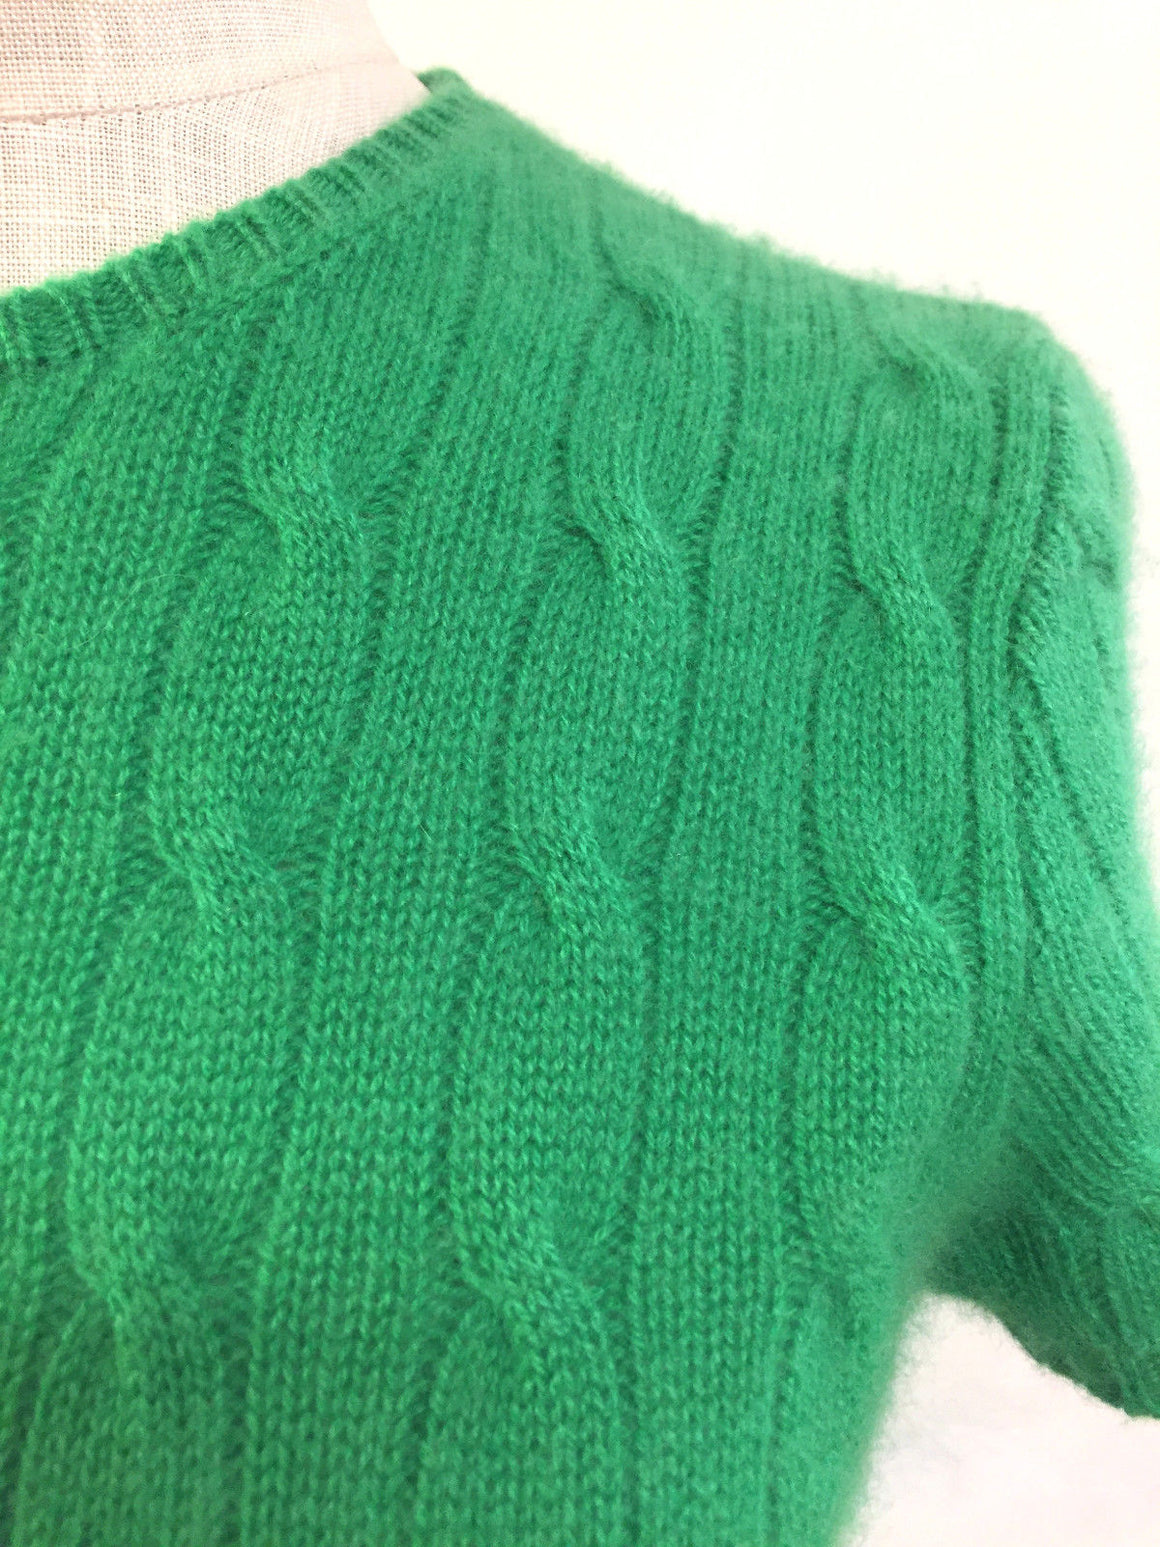 RALPH LAUREN Emerald-Green Cable-Knit Cashmere Short-Sleeve Sweater Top Size: Medium/Large